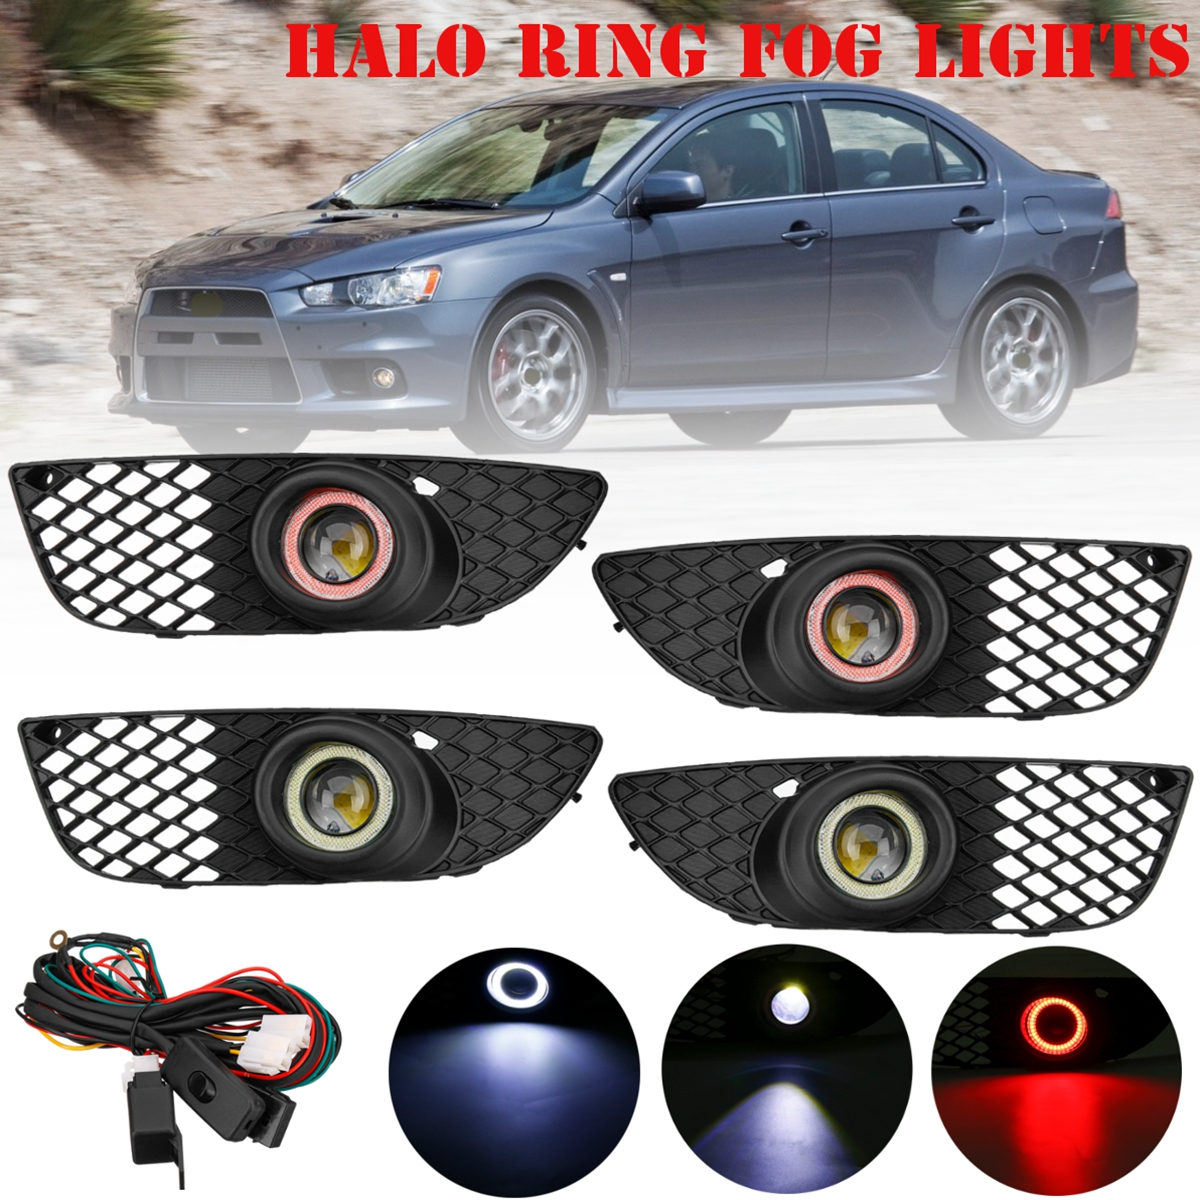 Clear Lens Halo Ring Fog Lights Lamps With Wiring Harness Switch Relay on